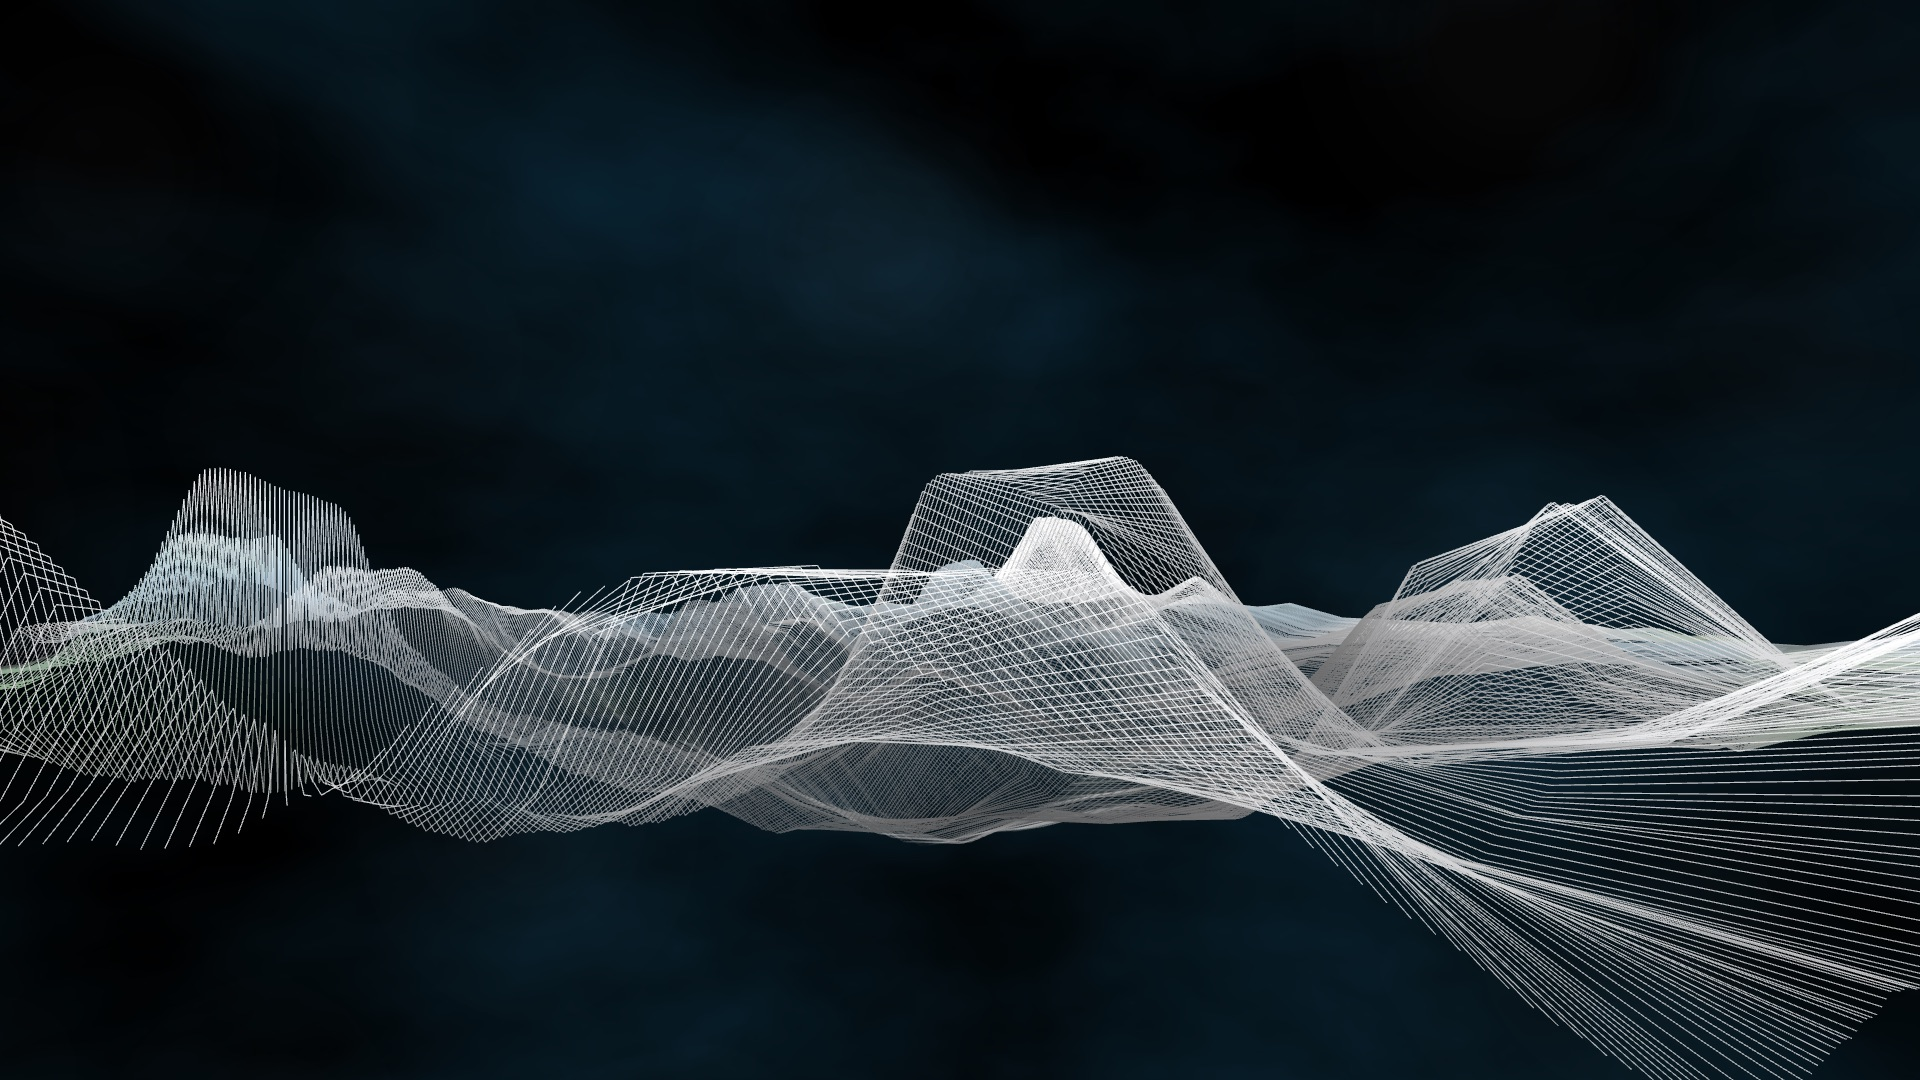 A digital drawing of white lines forming a transparent illusion.